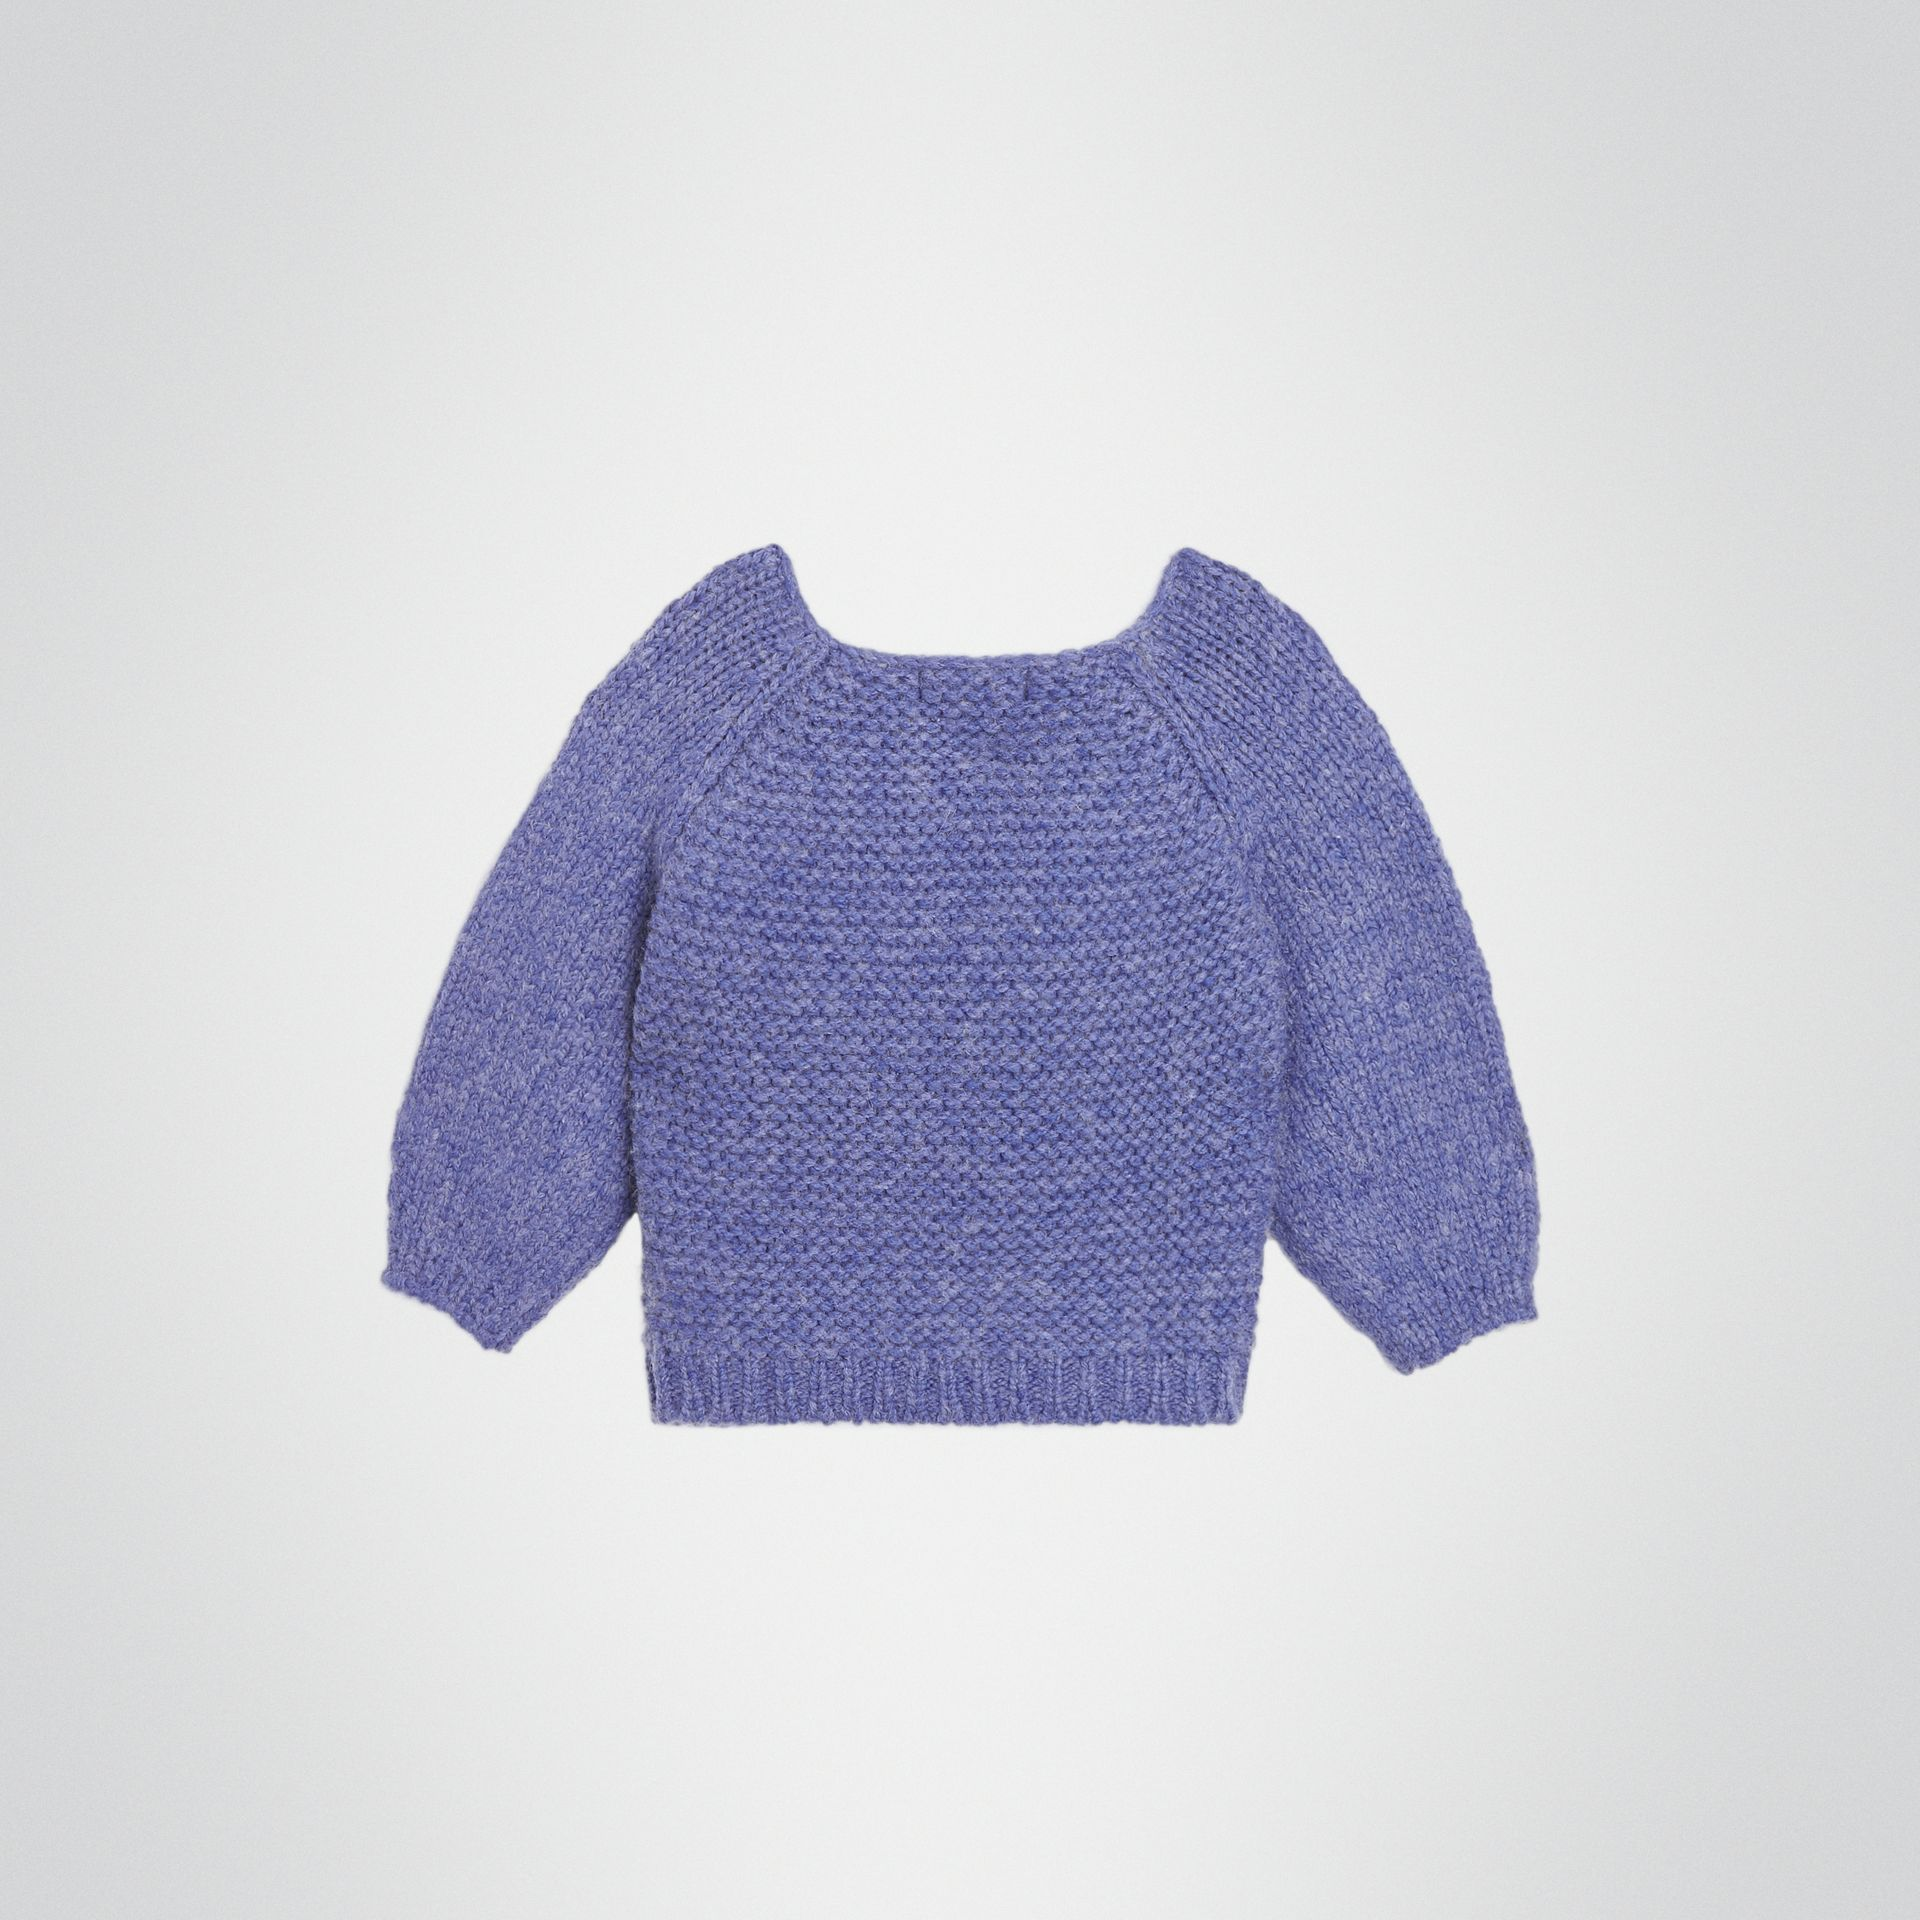 Embroidered Chunky Knit Wool Blend Sweater in Dusty Blue | Burberry - gallery image 3